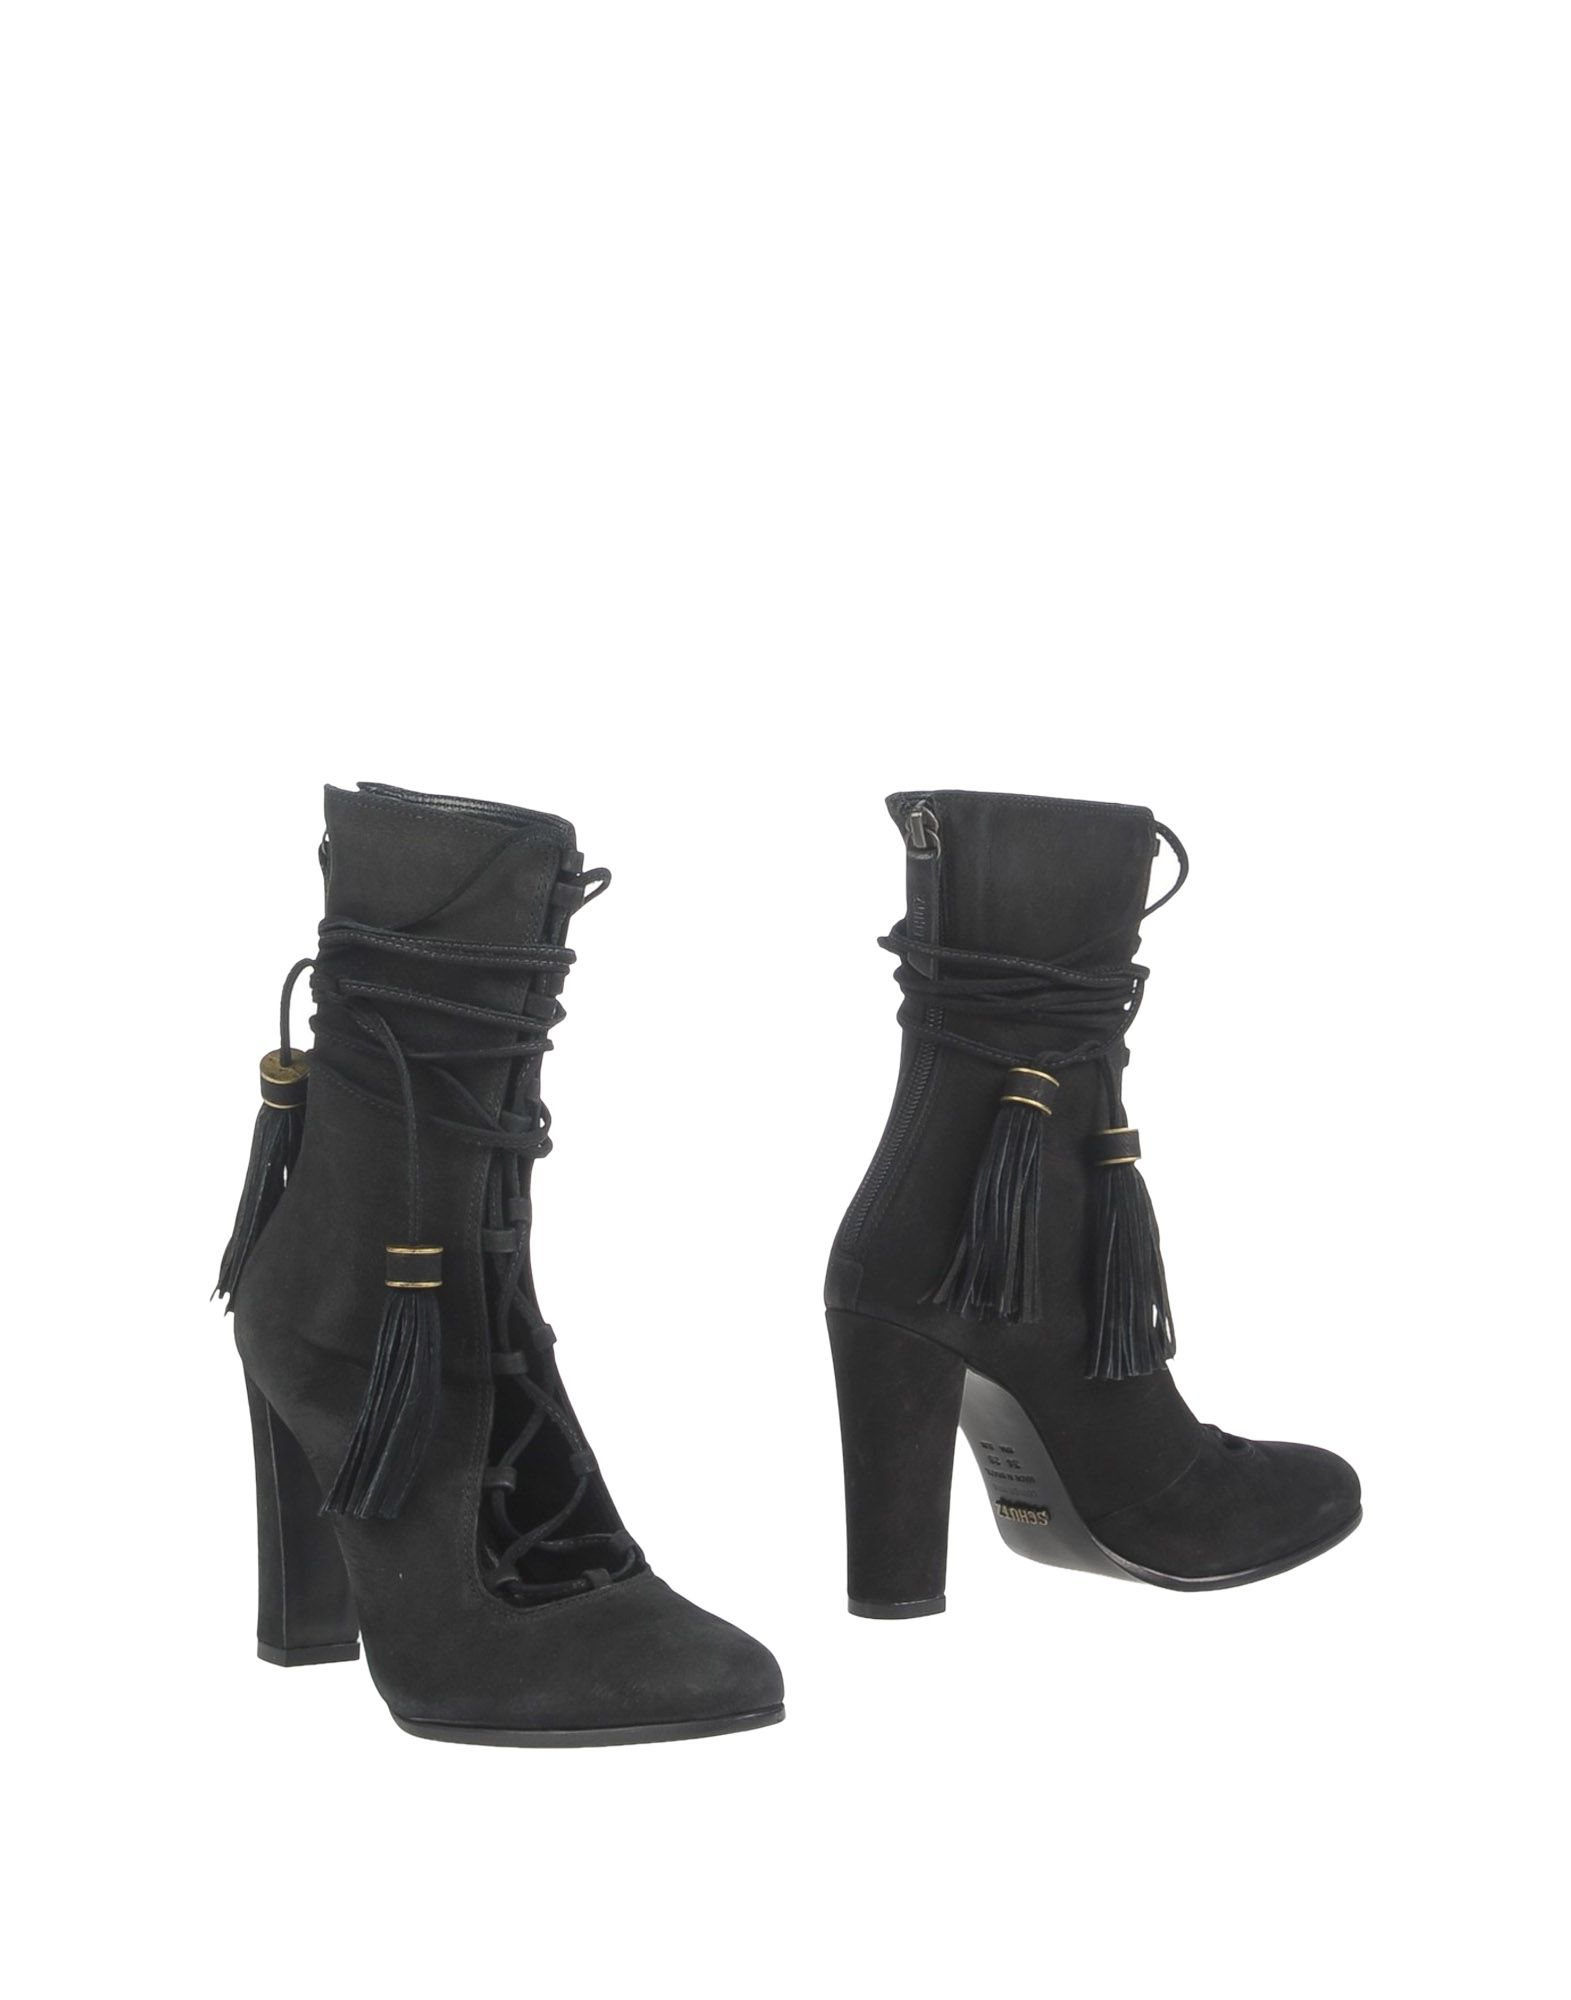 Schutz Ankle Boot Boots - Women Schutz Ankle Boots Boot online on  Canada - 11305836KJ 225a3e